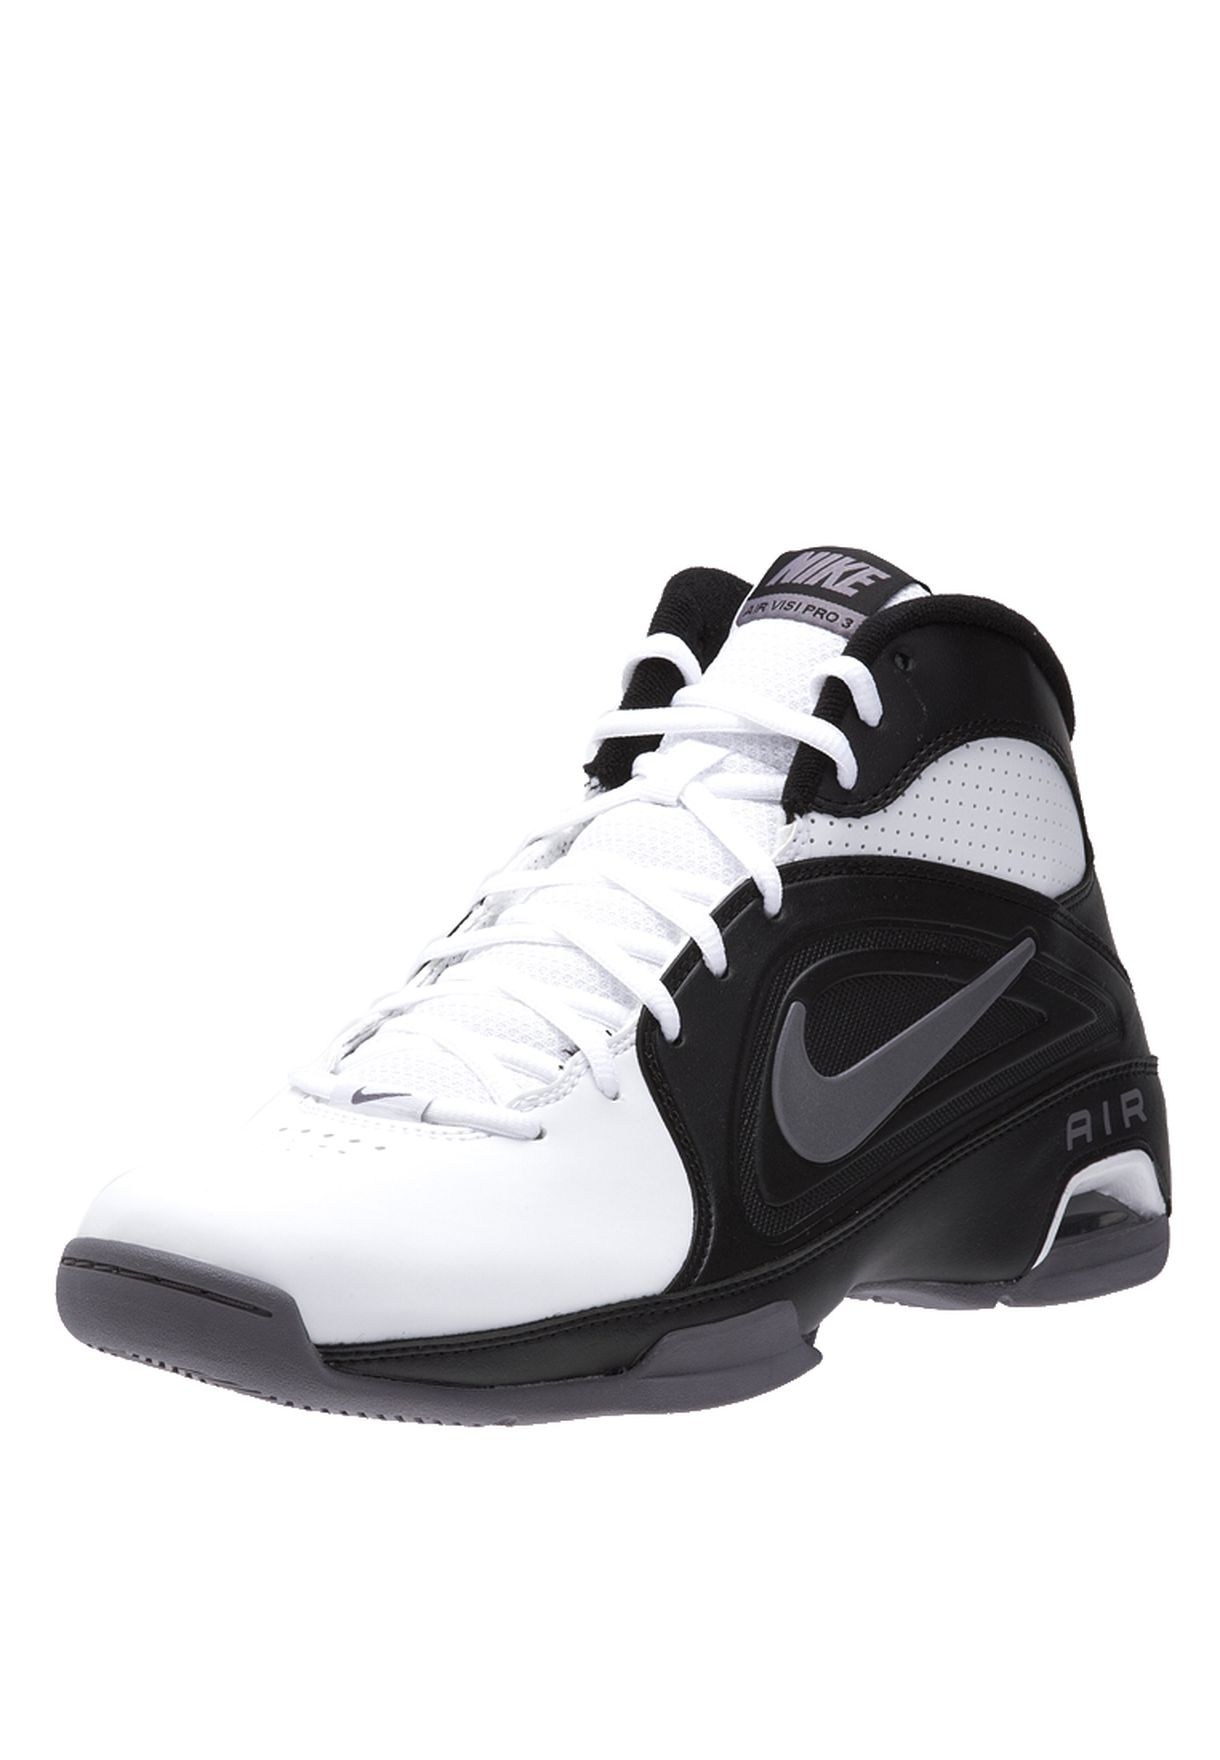 dc2311d5eac9 Shop Nike white Air Visi Pro III Sports Shoes 525746-003 for Men in ...